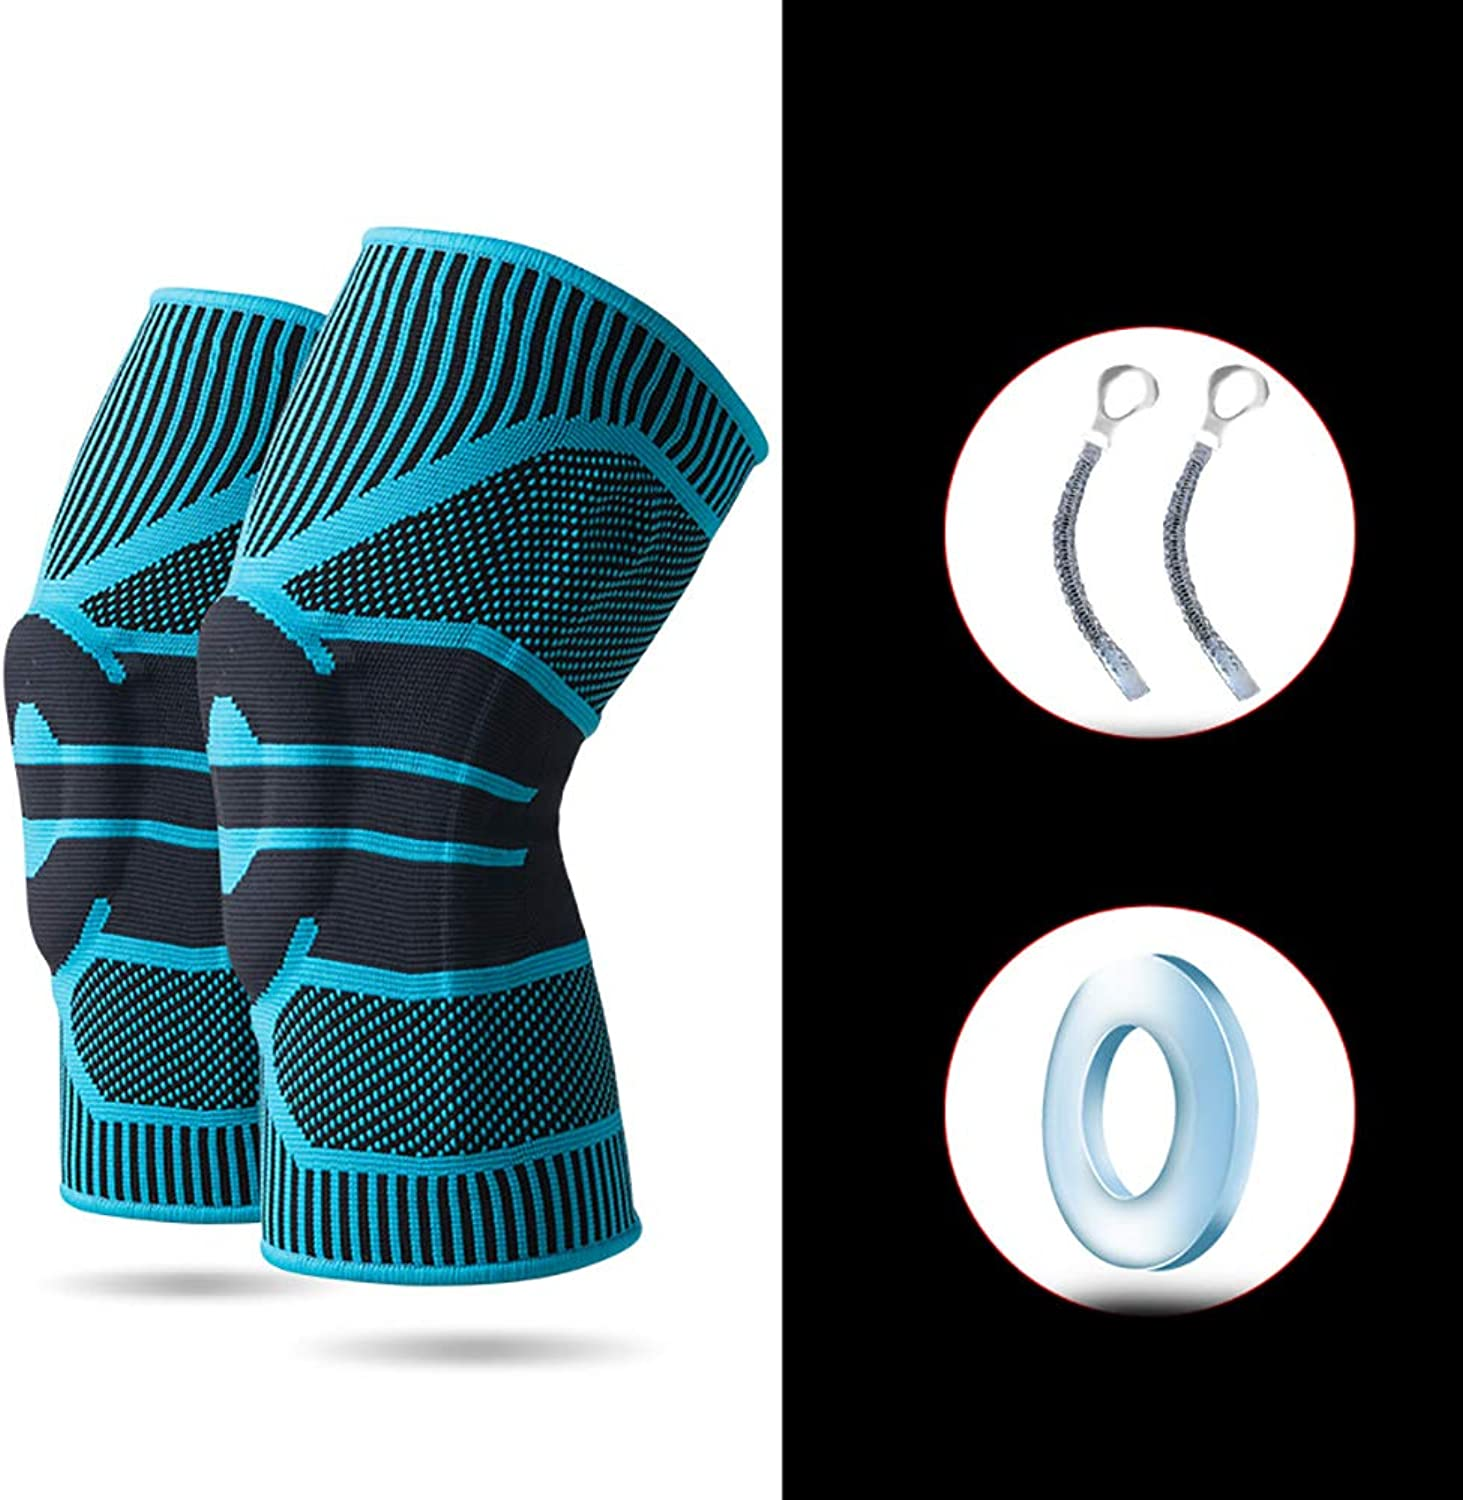 Knee Pad Outdoor Knee Predectors Sports Knee Pads Silicone Knee Pads Basketball Fitness Outdoor Sports Unisex 1 Pair